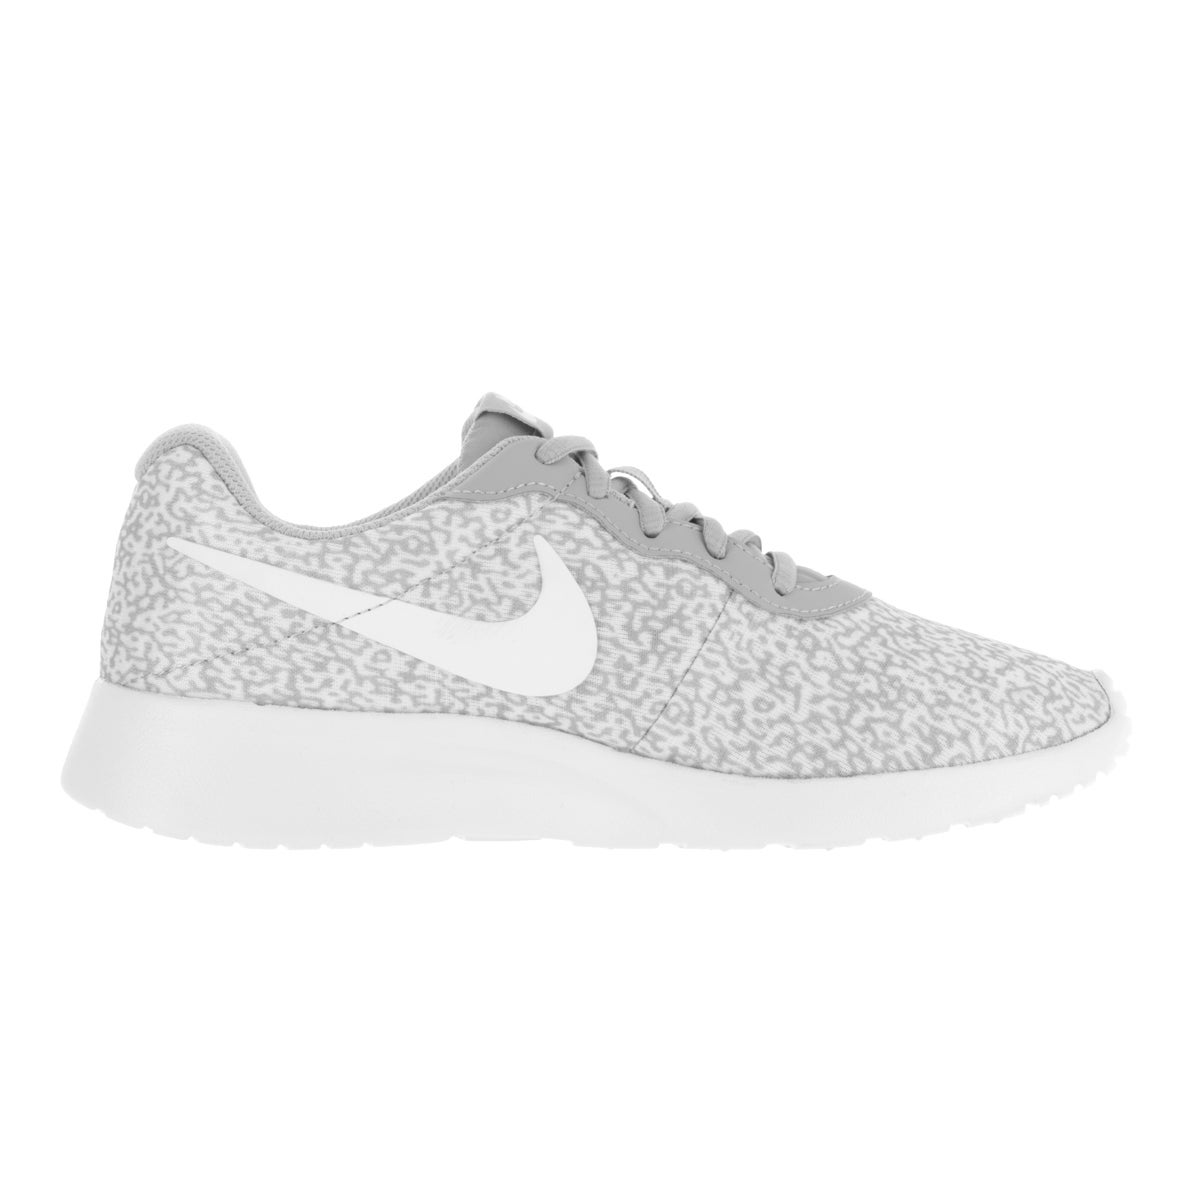 huge discount 2db45 ad3a9 Shop Nike Women s Tanjun Print Wolf Grey Wolf Grey White Running Shoe -  Free Shipping Today - Overstock - 13313150